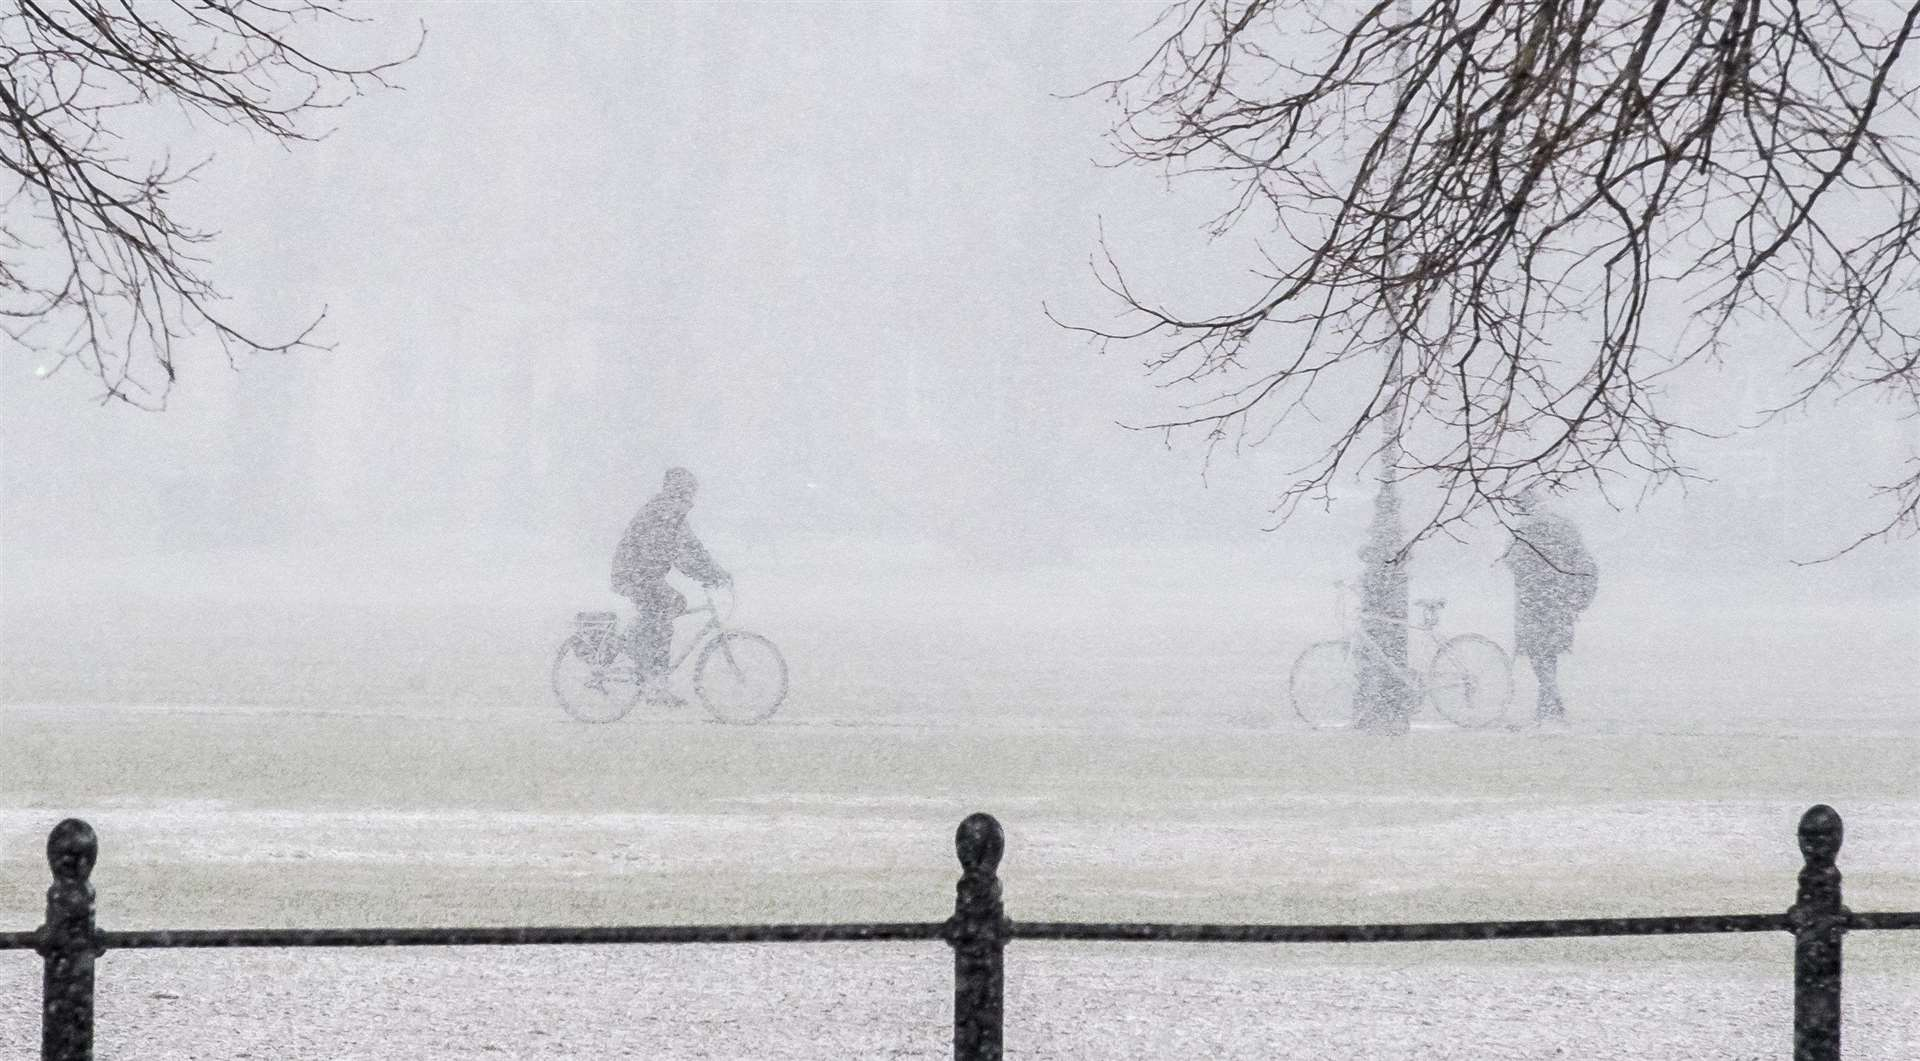 Dublin weather: Cold Day Ahead With A Chance Of Snow Overnight